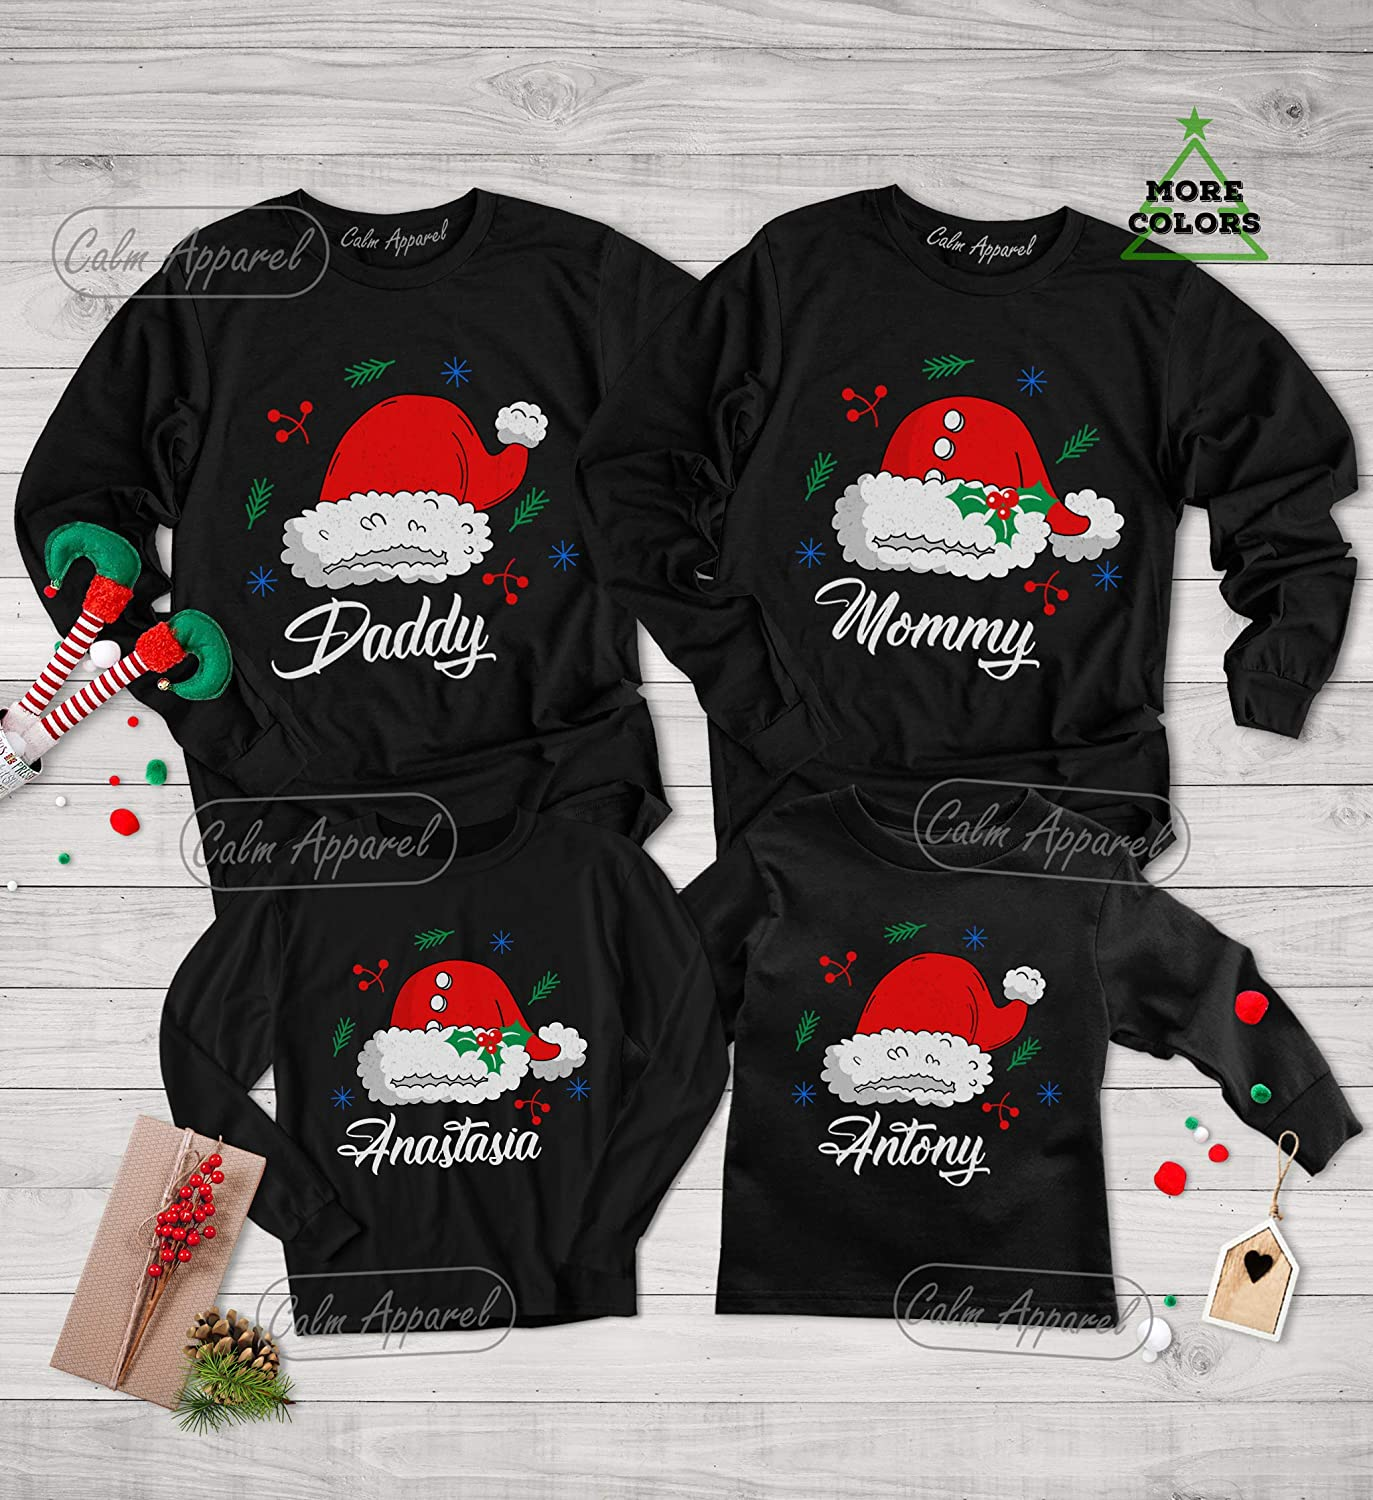 Women/'s long-sleeved Holiday Christmas Tee embroidered Santa Baby